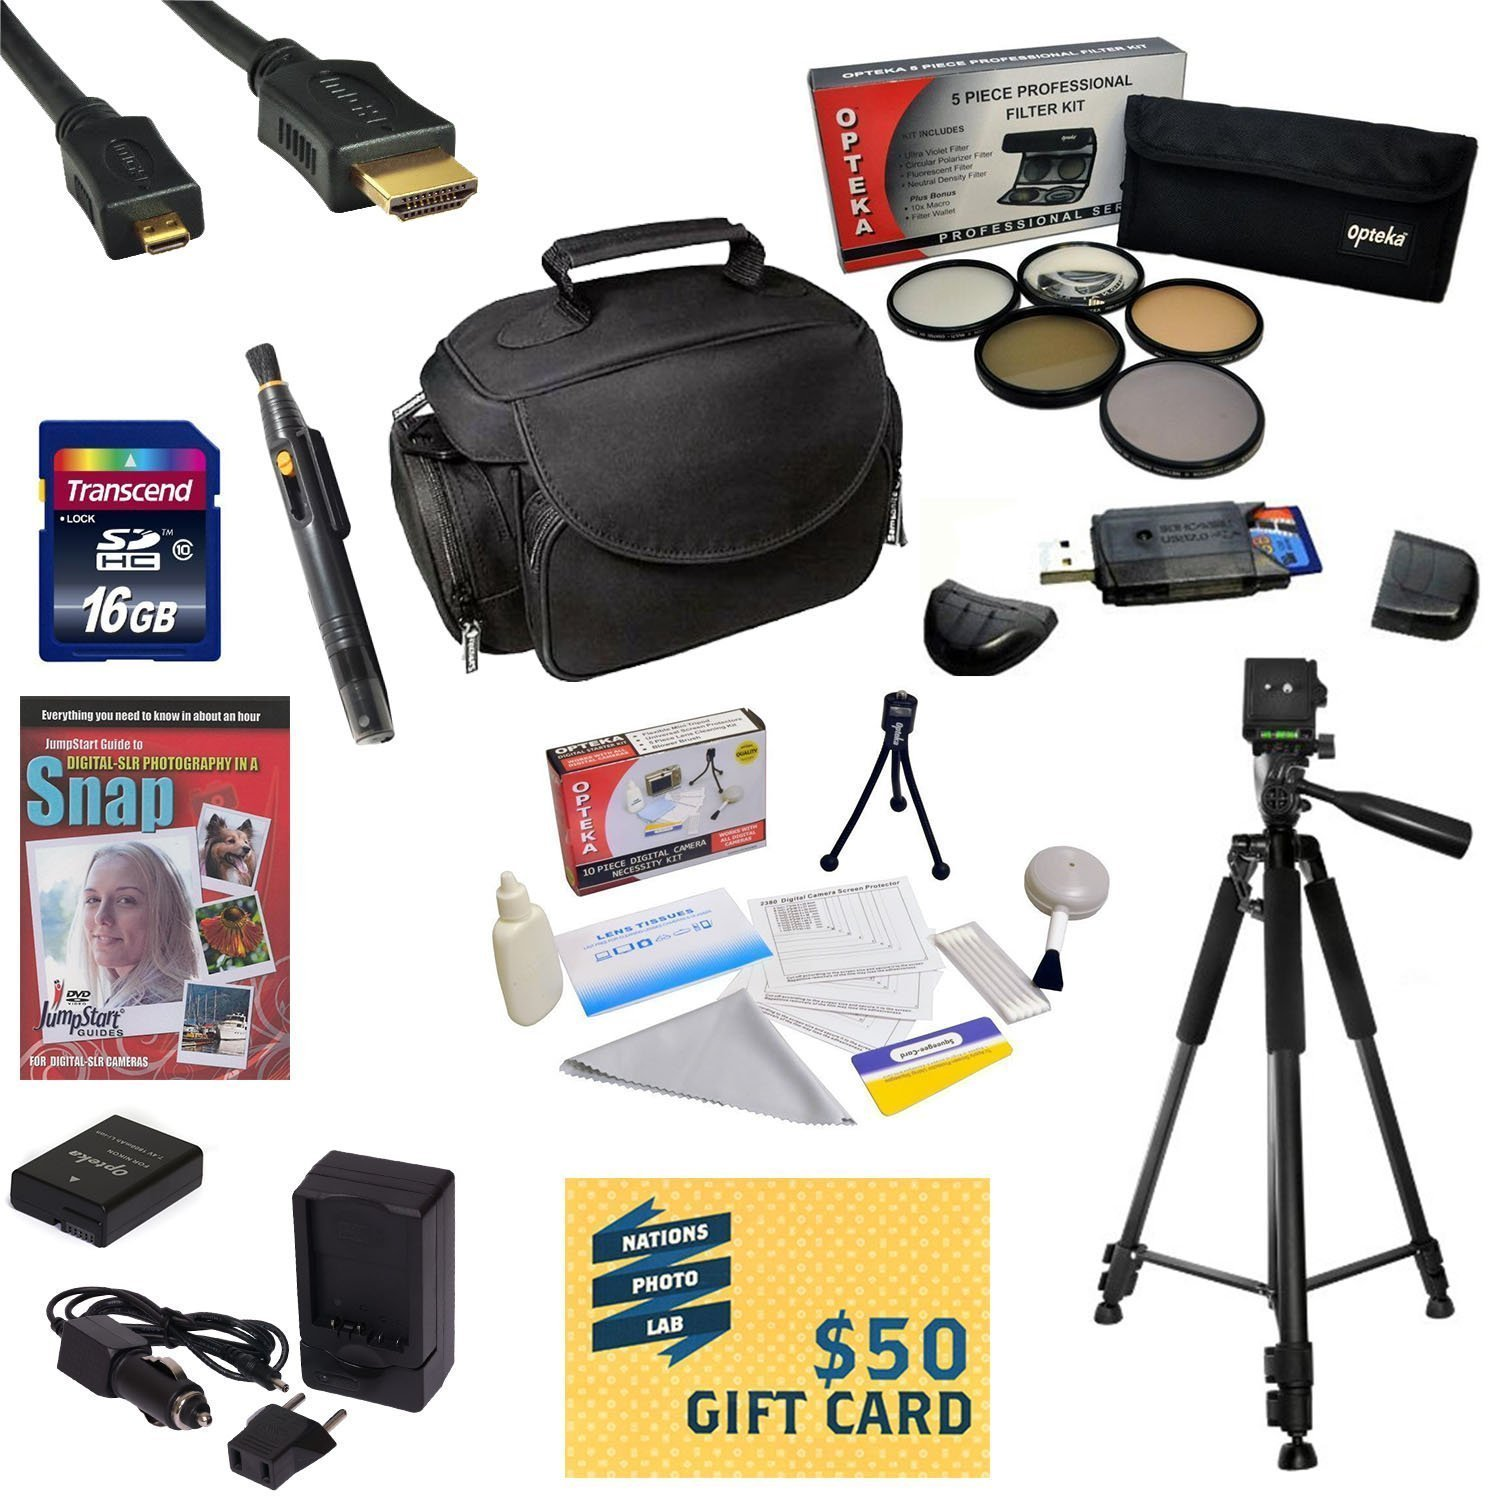 47th Street Photo Best Value Accessory Kit For the Nikon D40, D40X, D60, D3000, D5000 - Kit Includes 16GB High-Speed SDHC Card + Card Reader + Extra Battery + Travel Charger + 52MM 5 Piece Pro Filter Kit (UV, CPL, FL, ND4 and 10x Macro Lens) + HDMI Cable